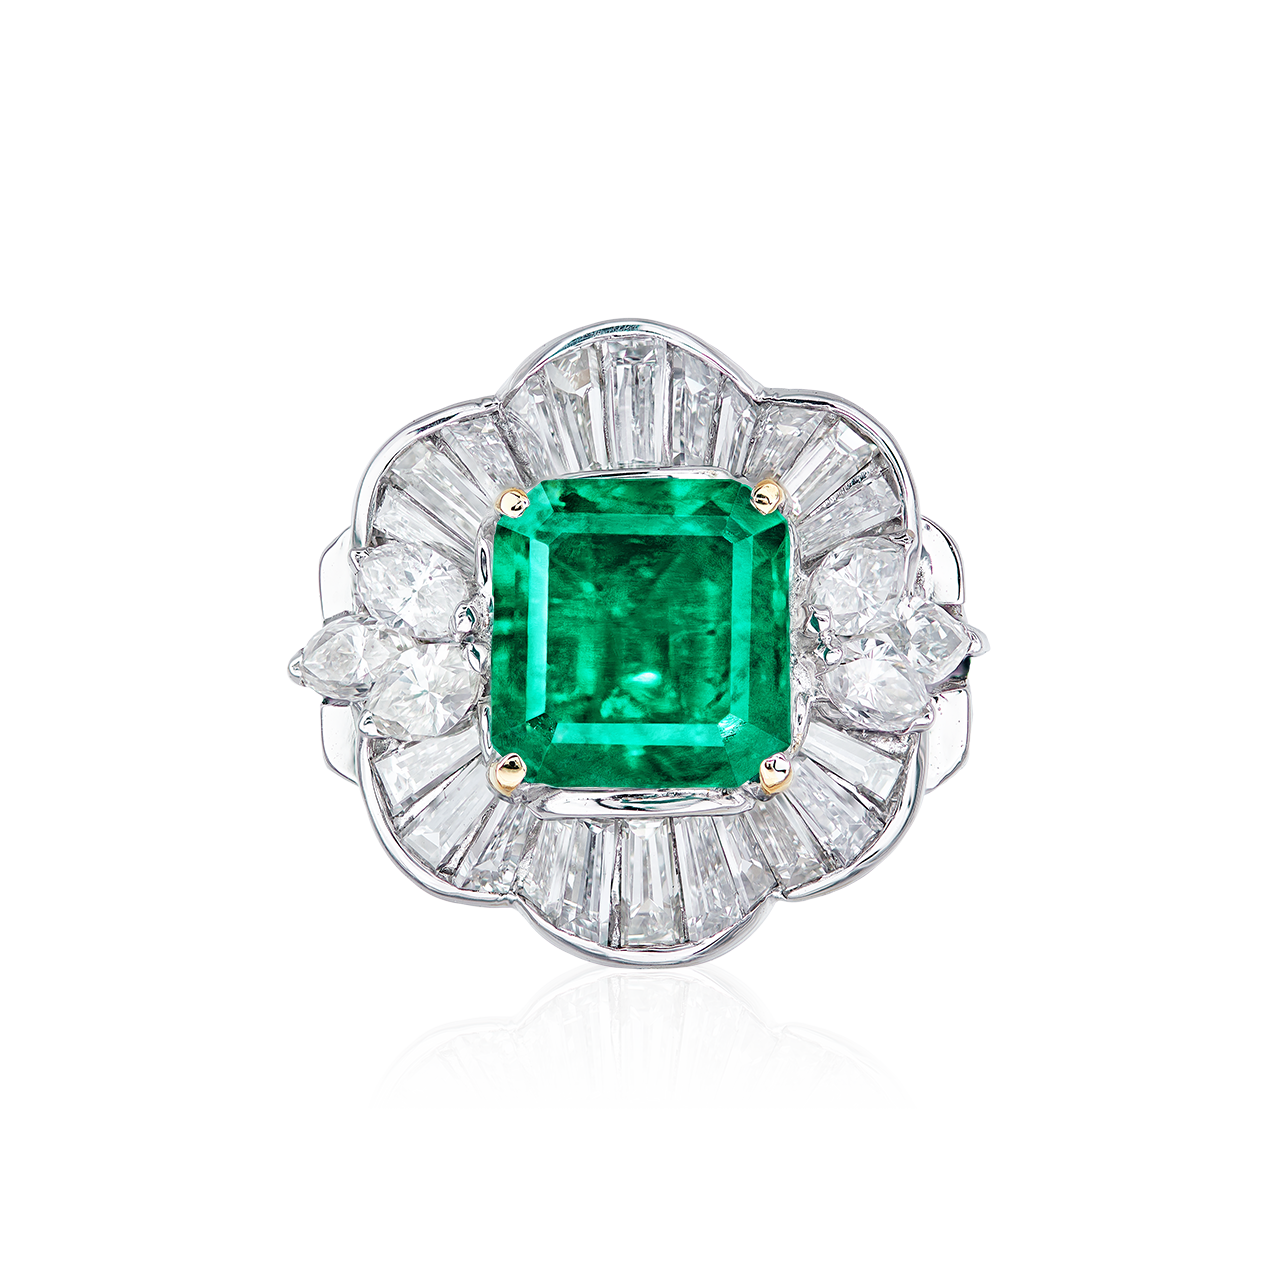 2.347克拉 哥倫比亞艷彩祖母綠鑽戒